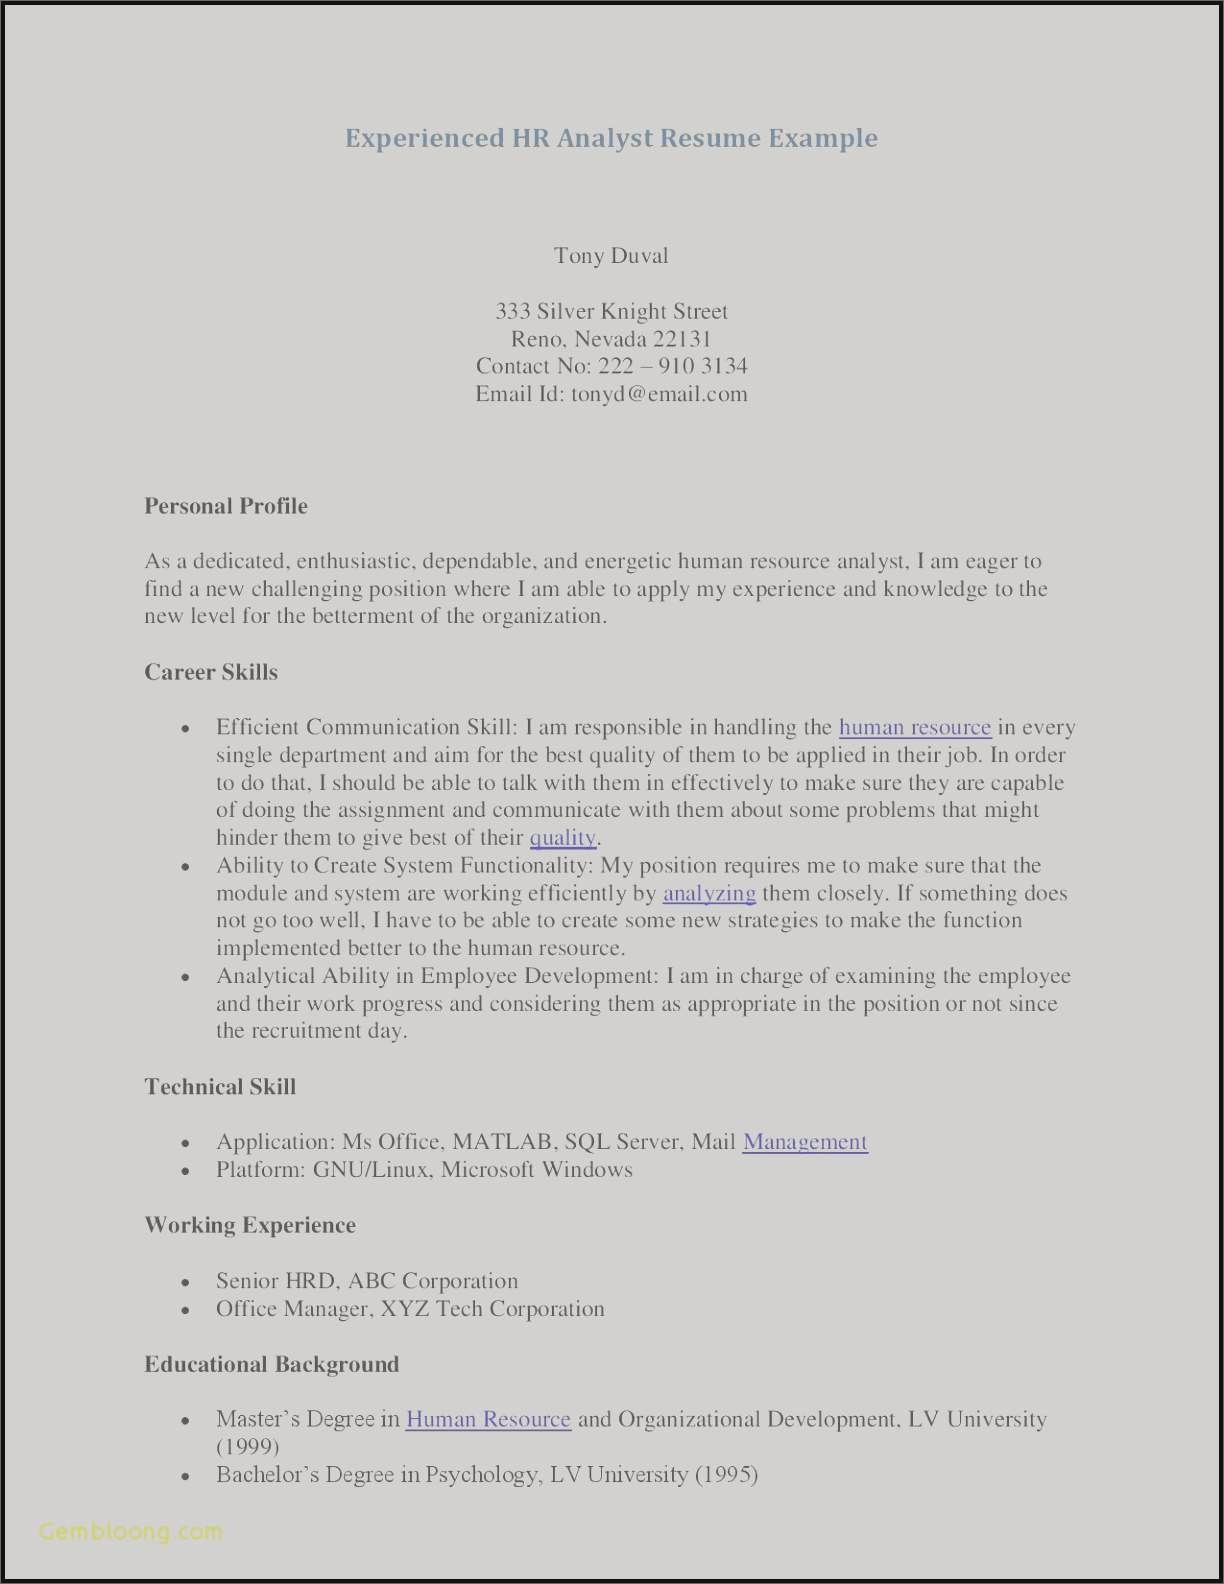 Human Resources Resume Template - Examples Human Resources Resumes New Resume Te Awesome Examples